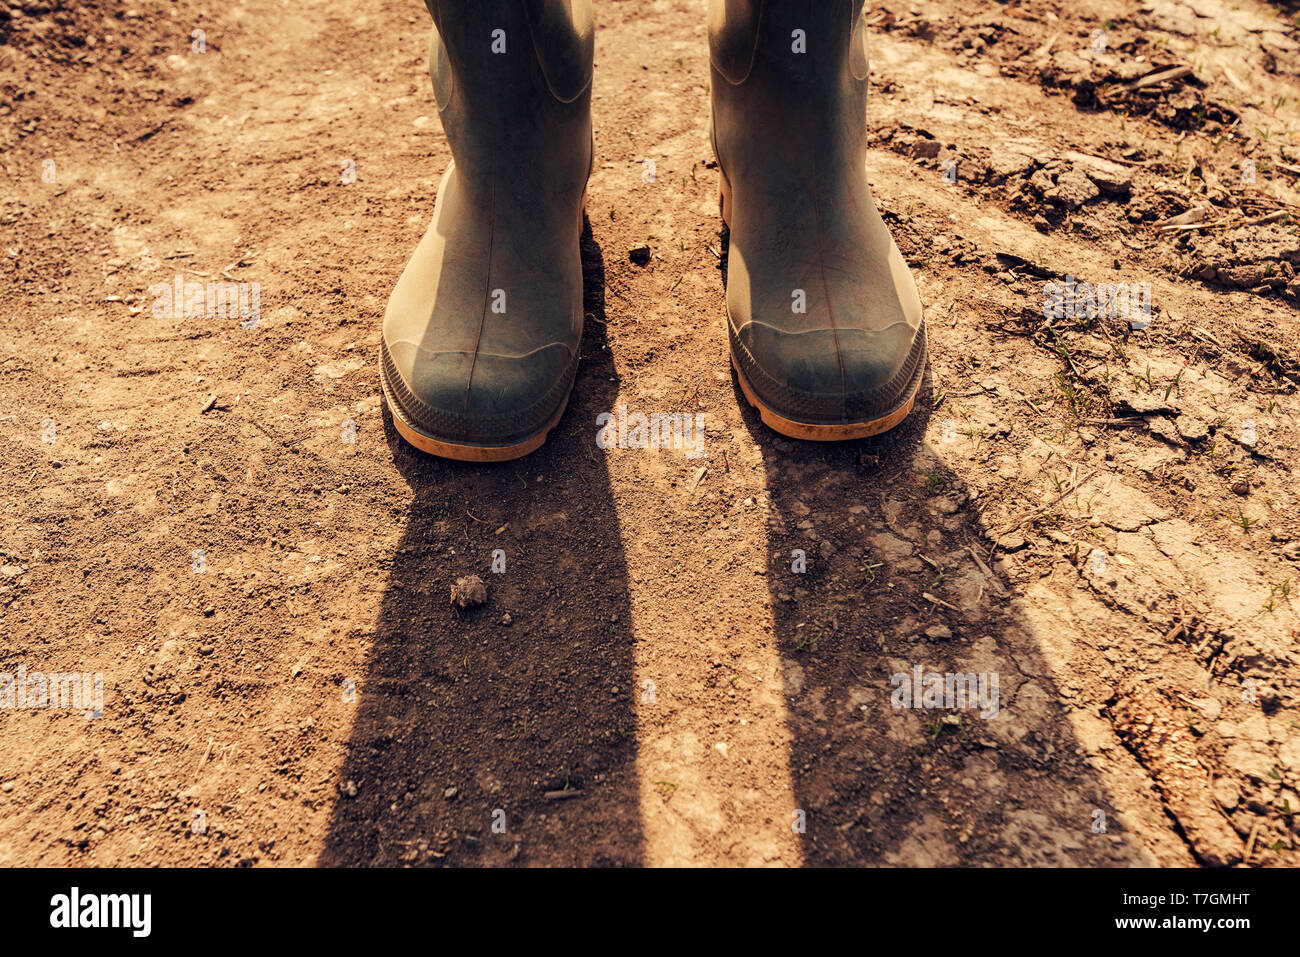 Farmer standing on dirt country road, close up of rubber wellington boots Stock Photo